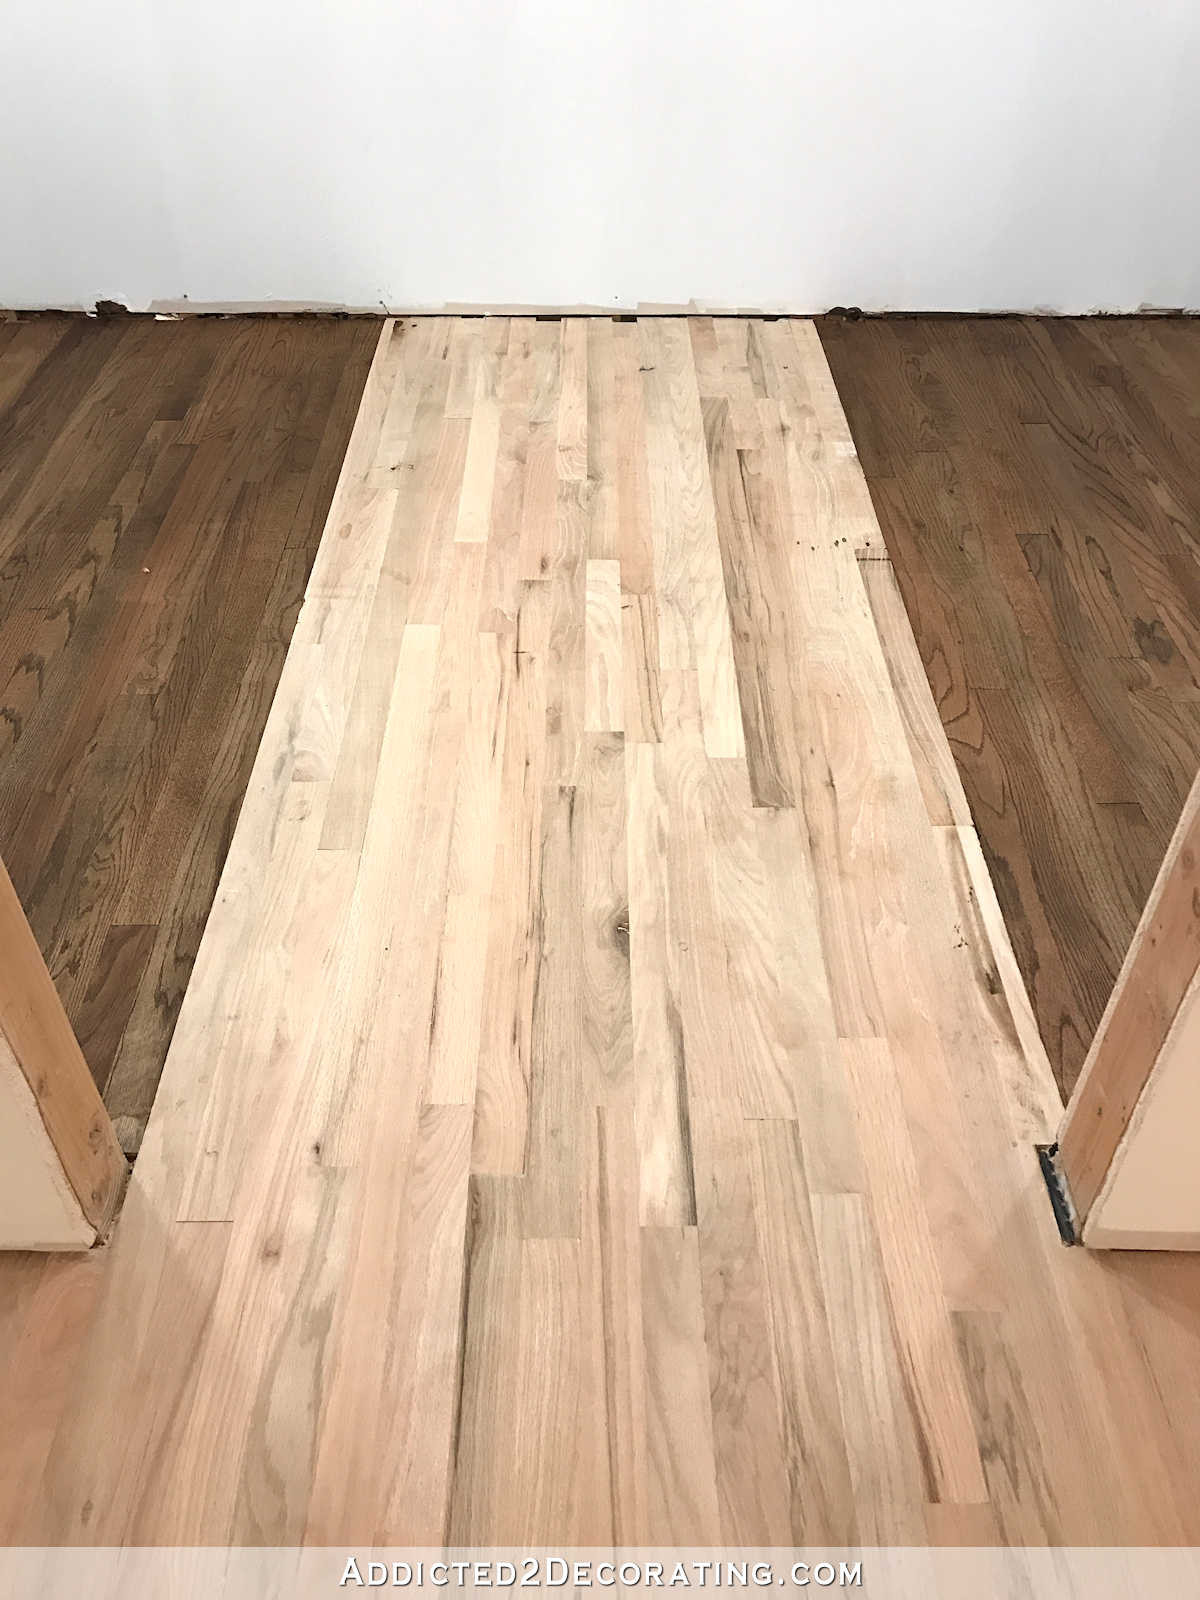 how to refinish hardwood floors that have been painted of adventures in staining my red oak hardwood floors products process intended for staining red oak hardwood floors 11 stain on left and right sides of the